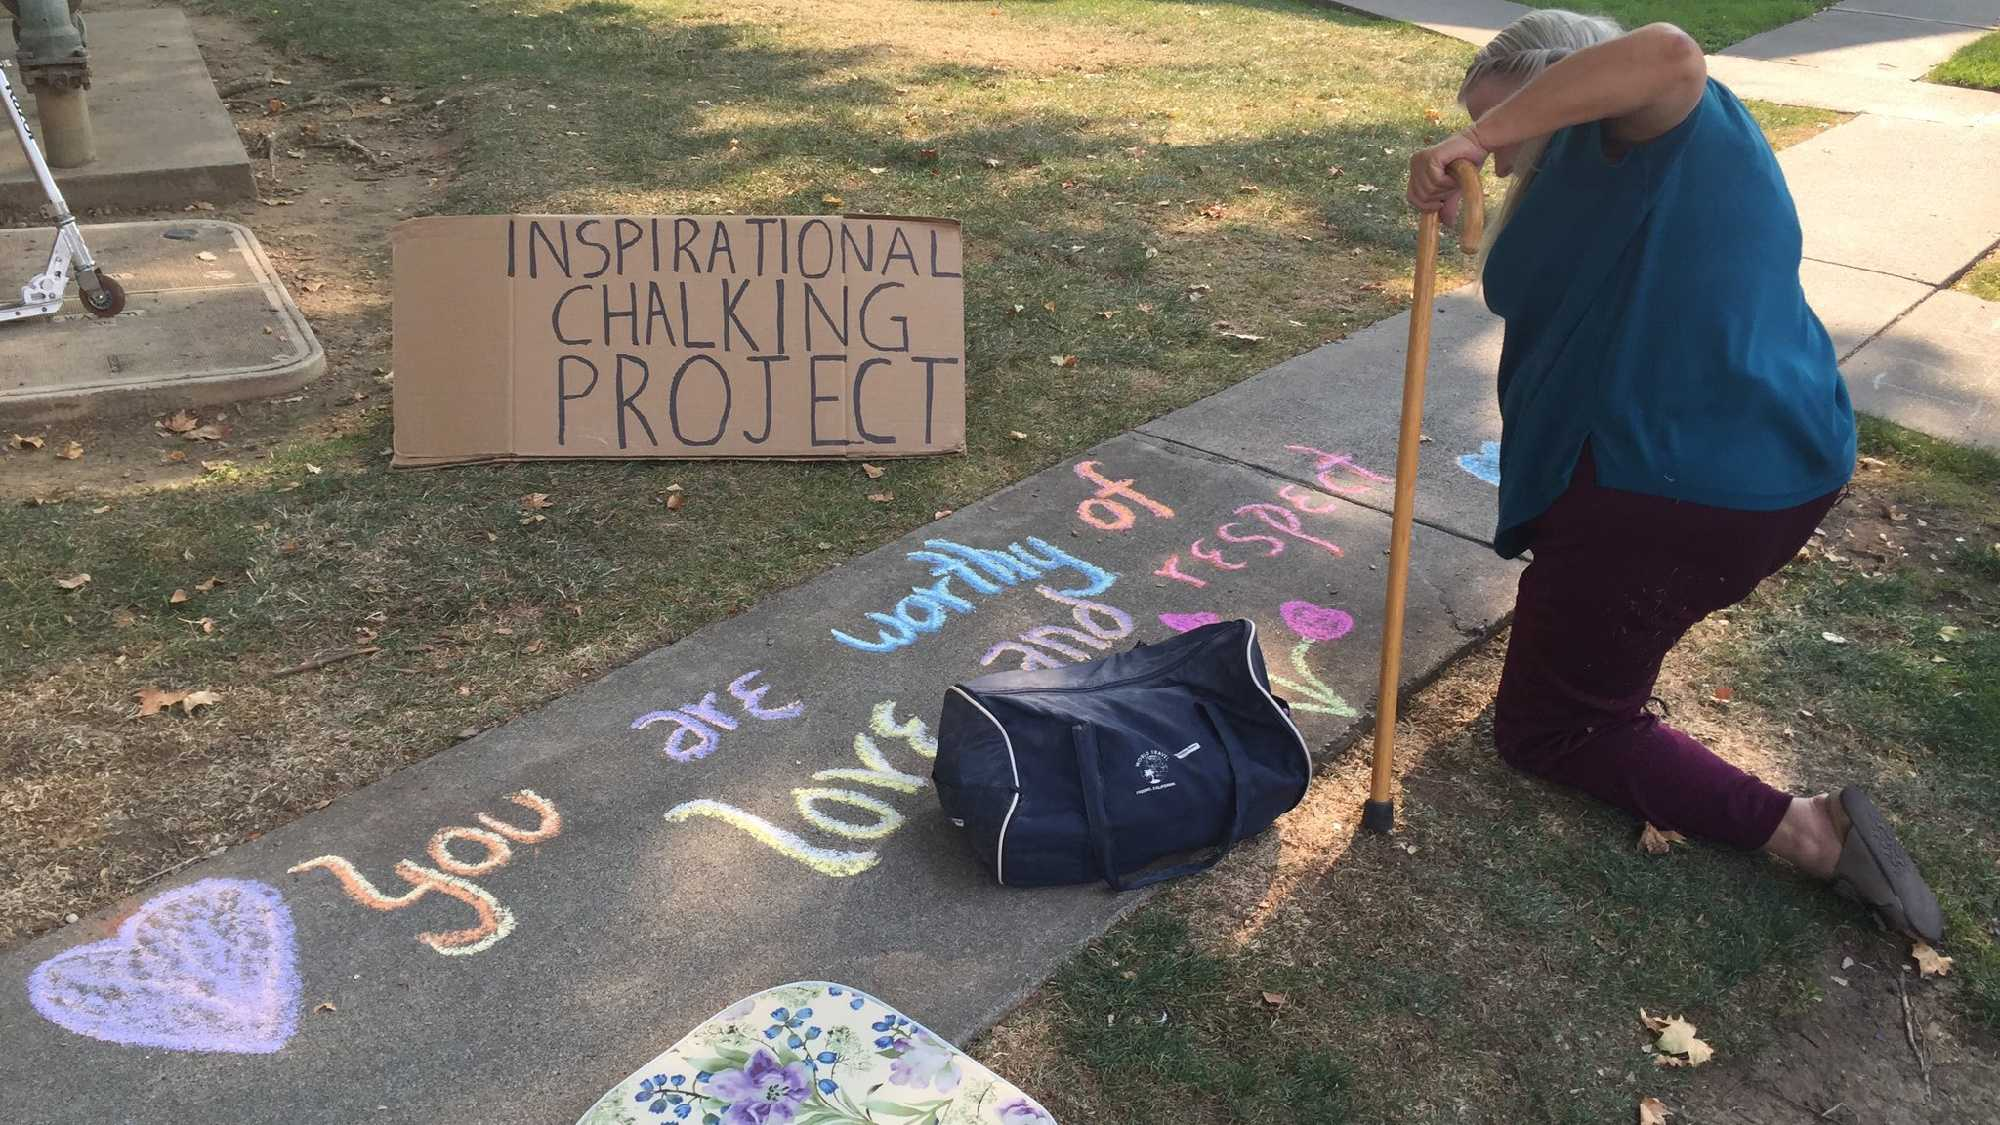 Ms. Kay, a 65-year-old retired accountant, draws inspirational messages on Carmichael sidewalks.